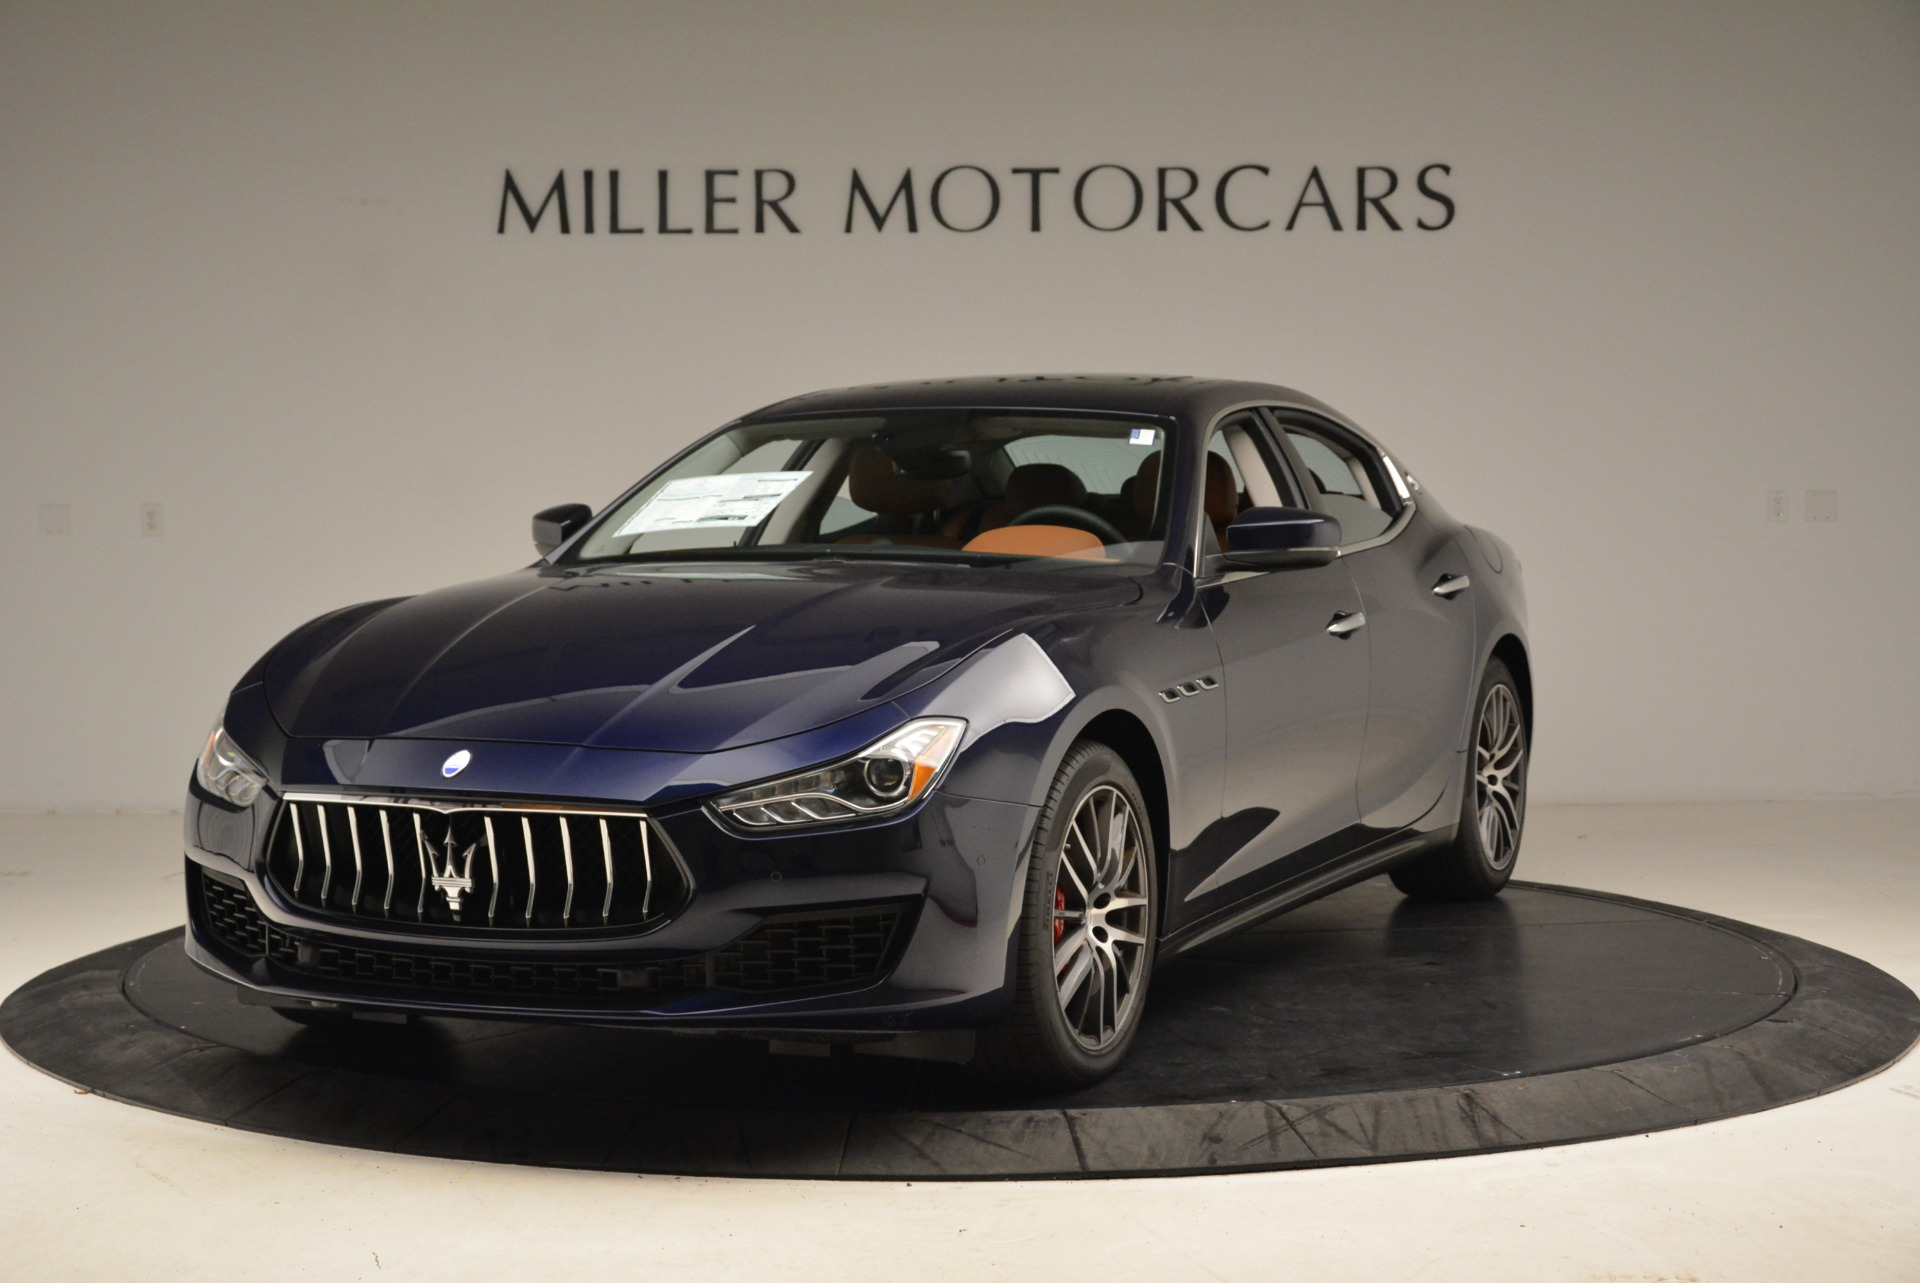 Used 2019 Maserati Ghibli S Q4 for sale Sold at Rolls-Royce Motor Cars Greenwich in Greenwich CT 06830 1